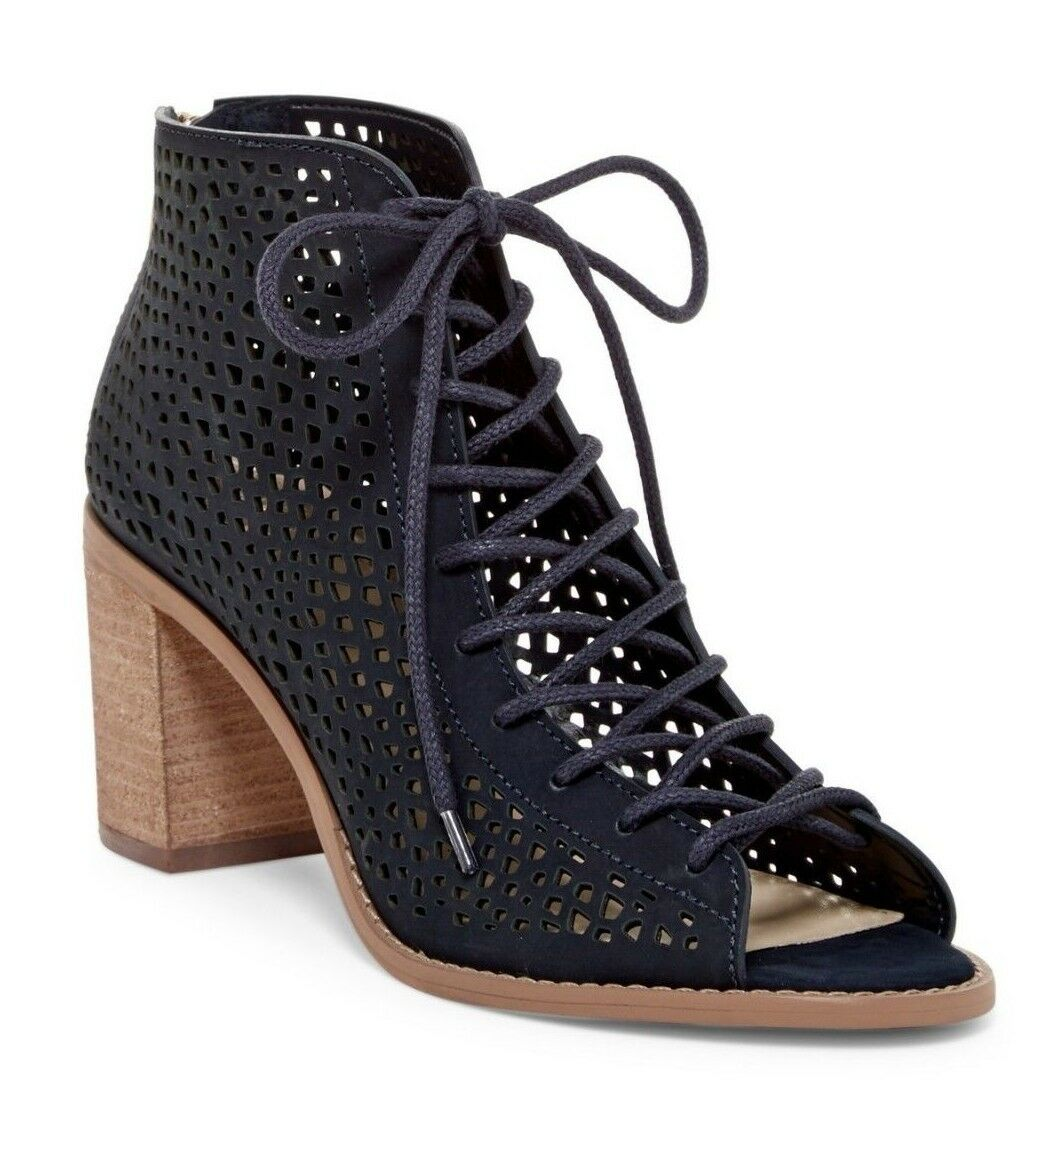 VINCE CAMUTO schuhe TULINA PERFORATED LEATHER LACE UP StiefelIES DARK NAVY 8